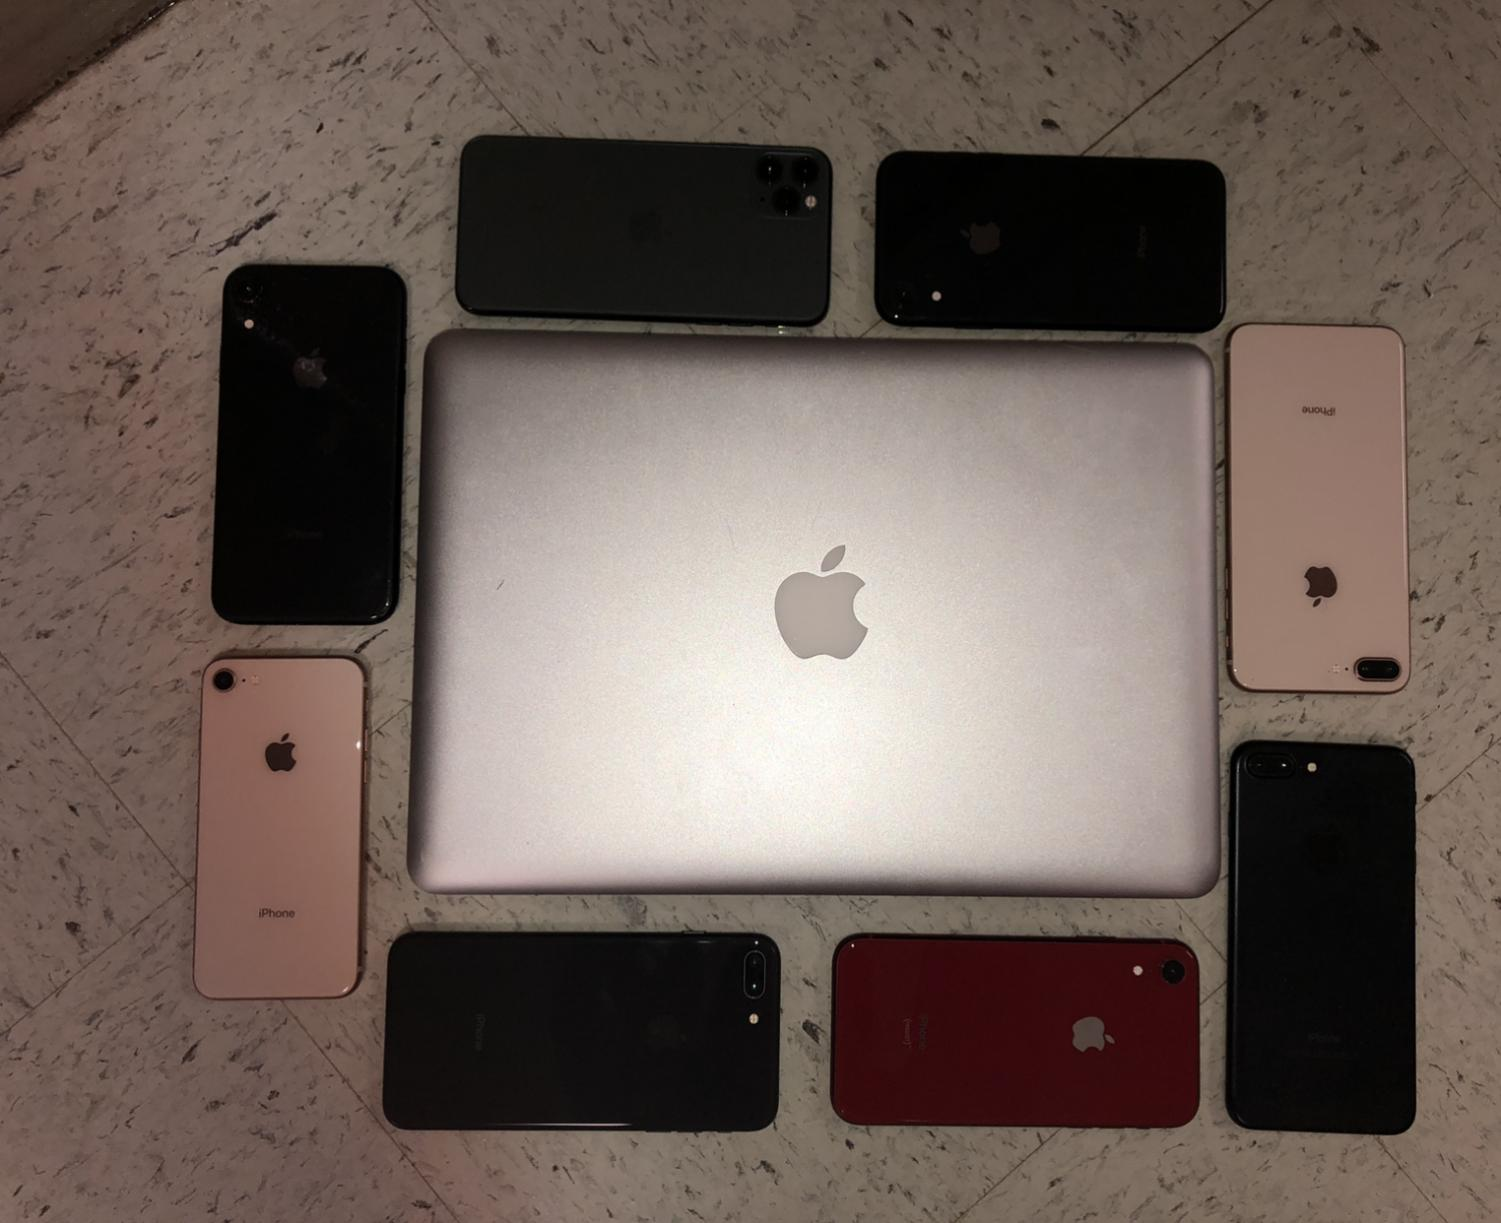 New Apple products will hit the stores soon. These come with new upgrades that will wow all techies.